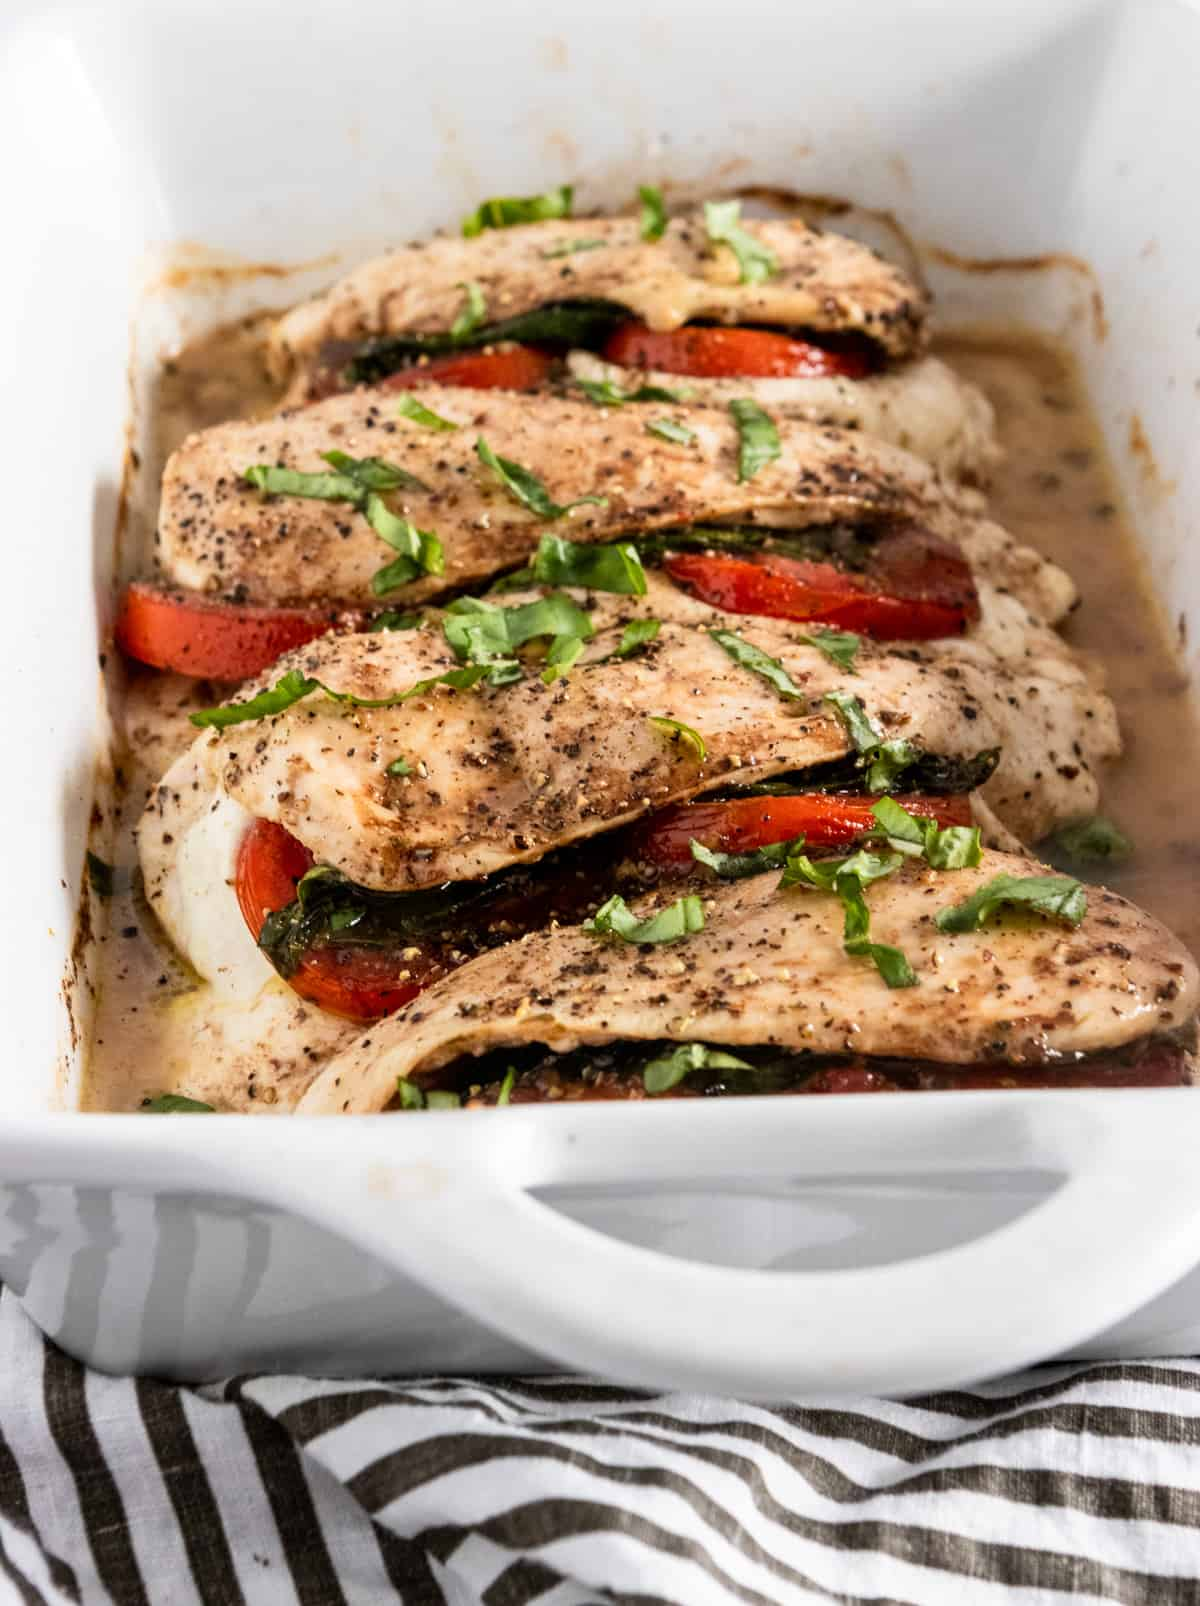 Chicken breast in baking pan with tomato and mozzarella.